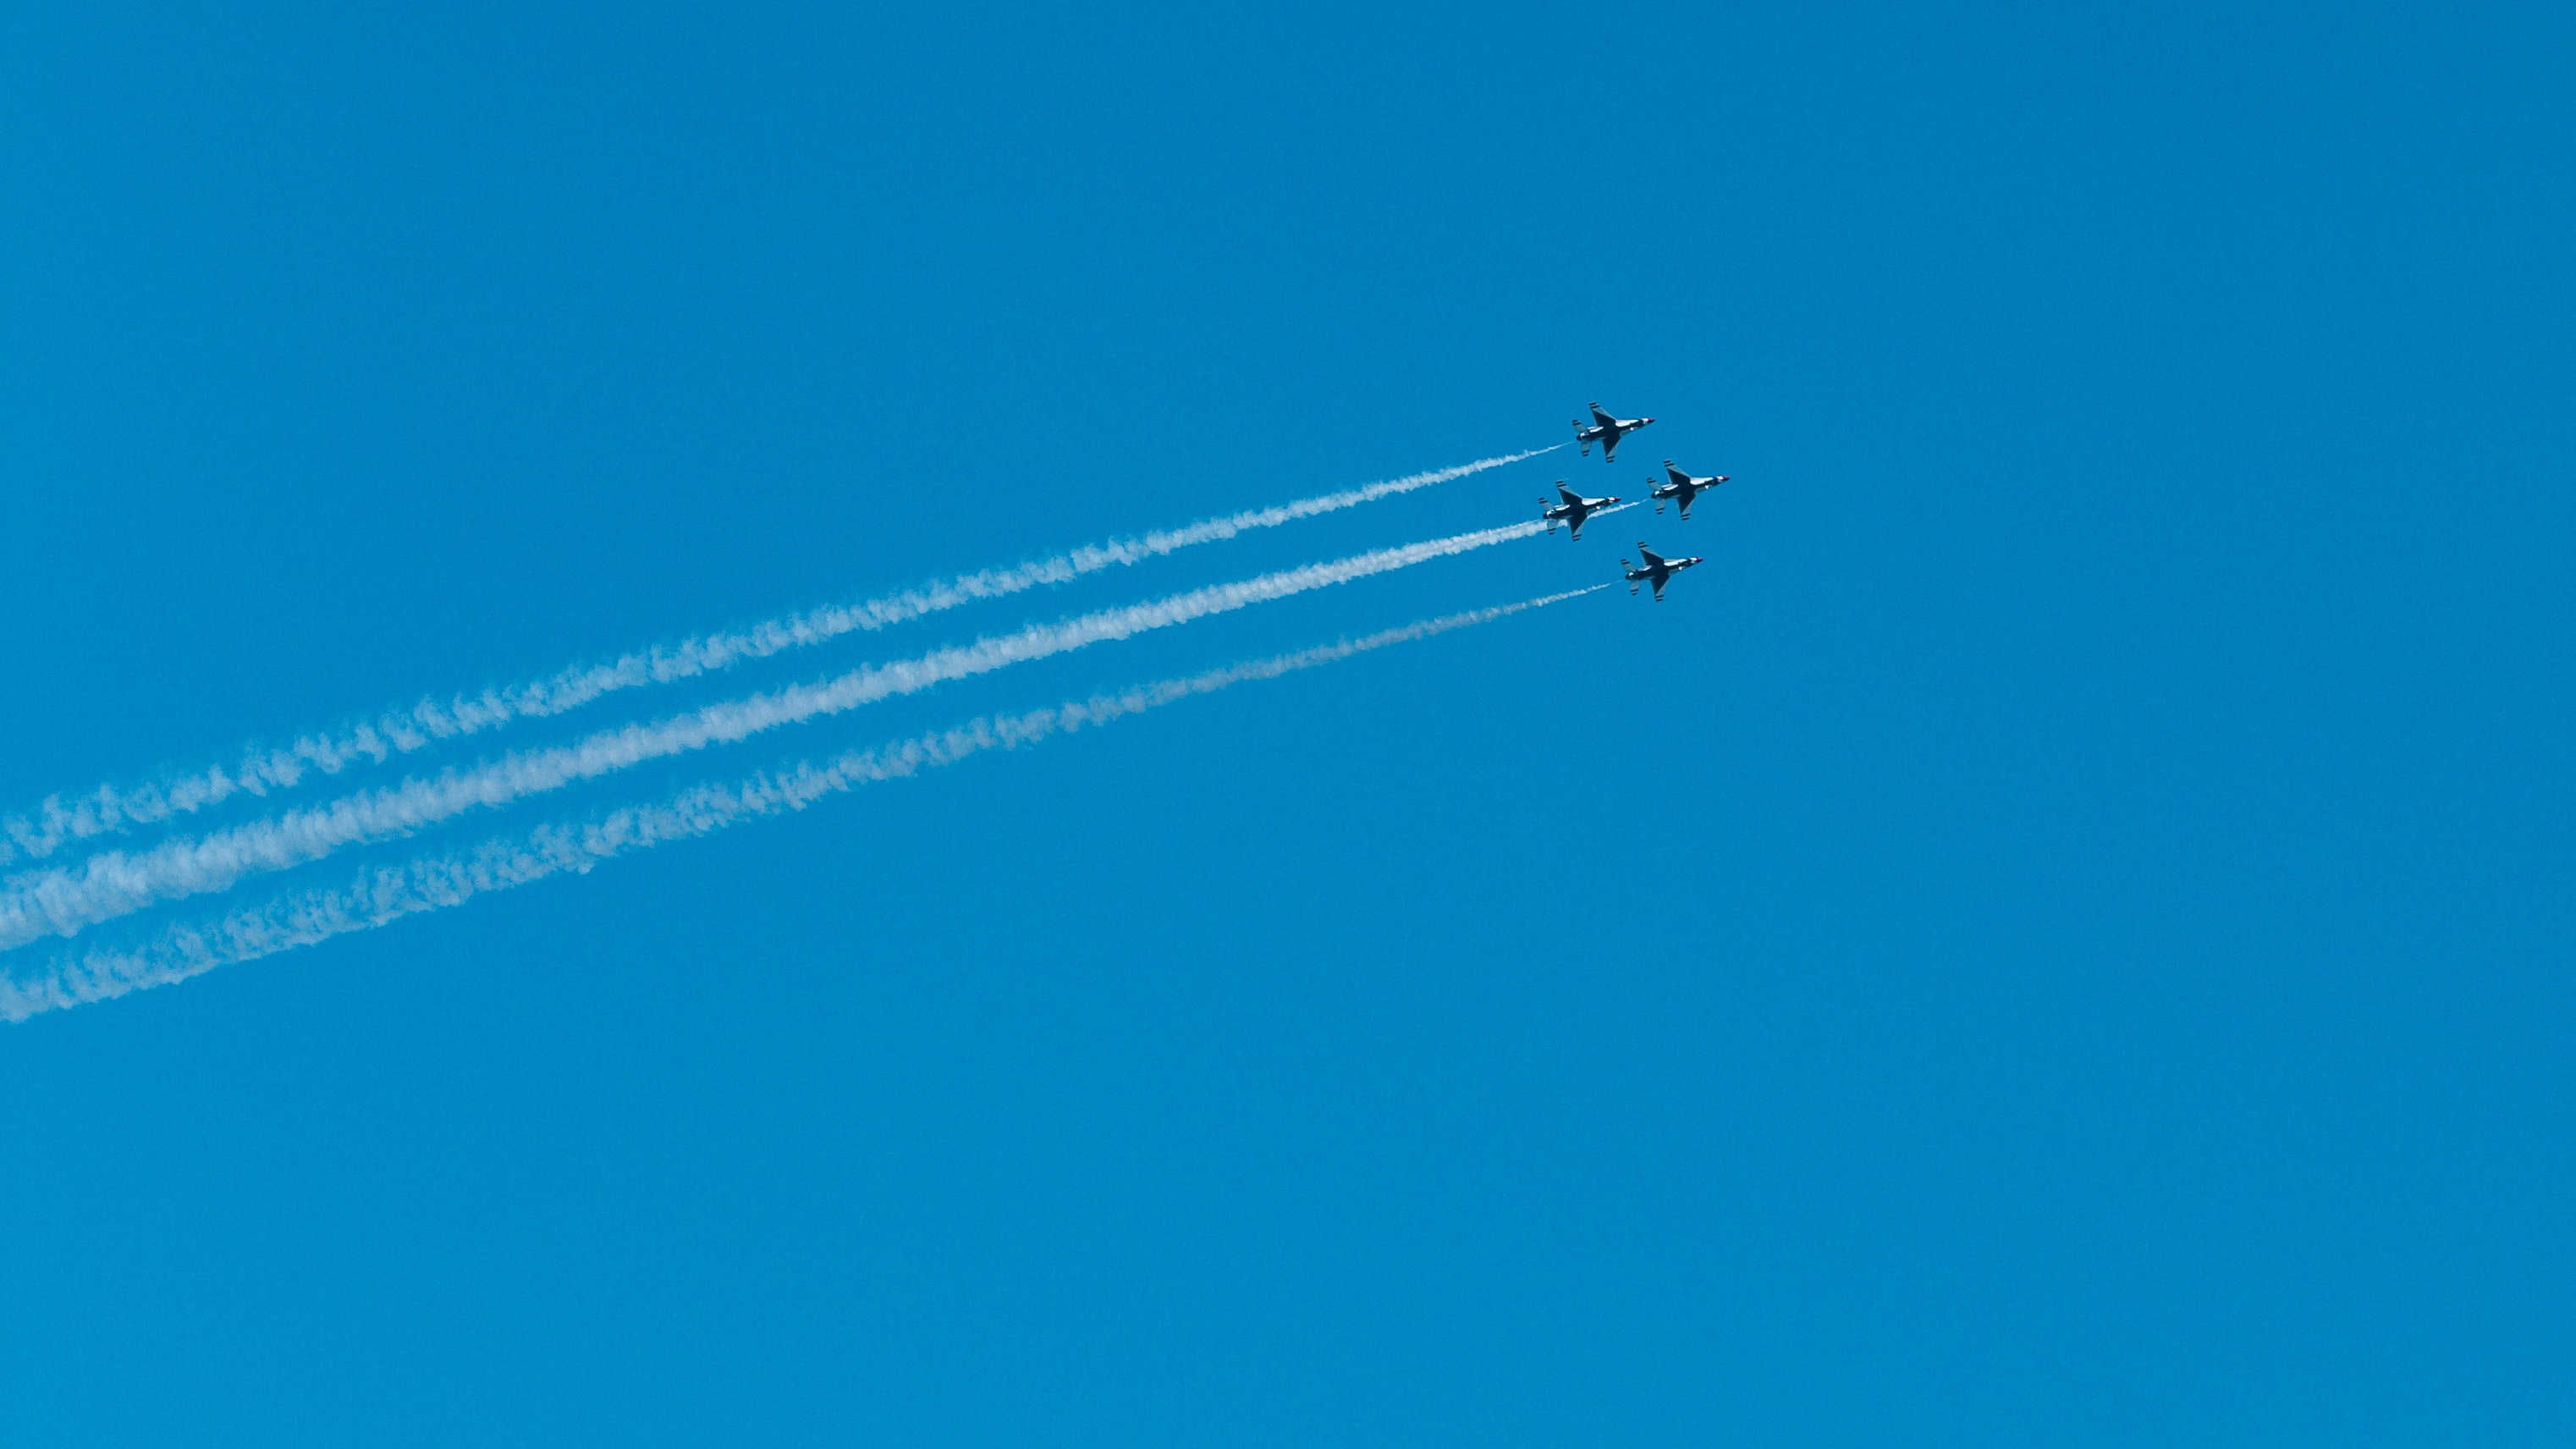 four fighter jets